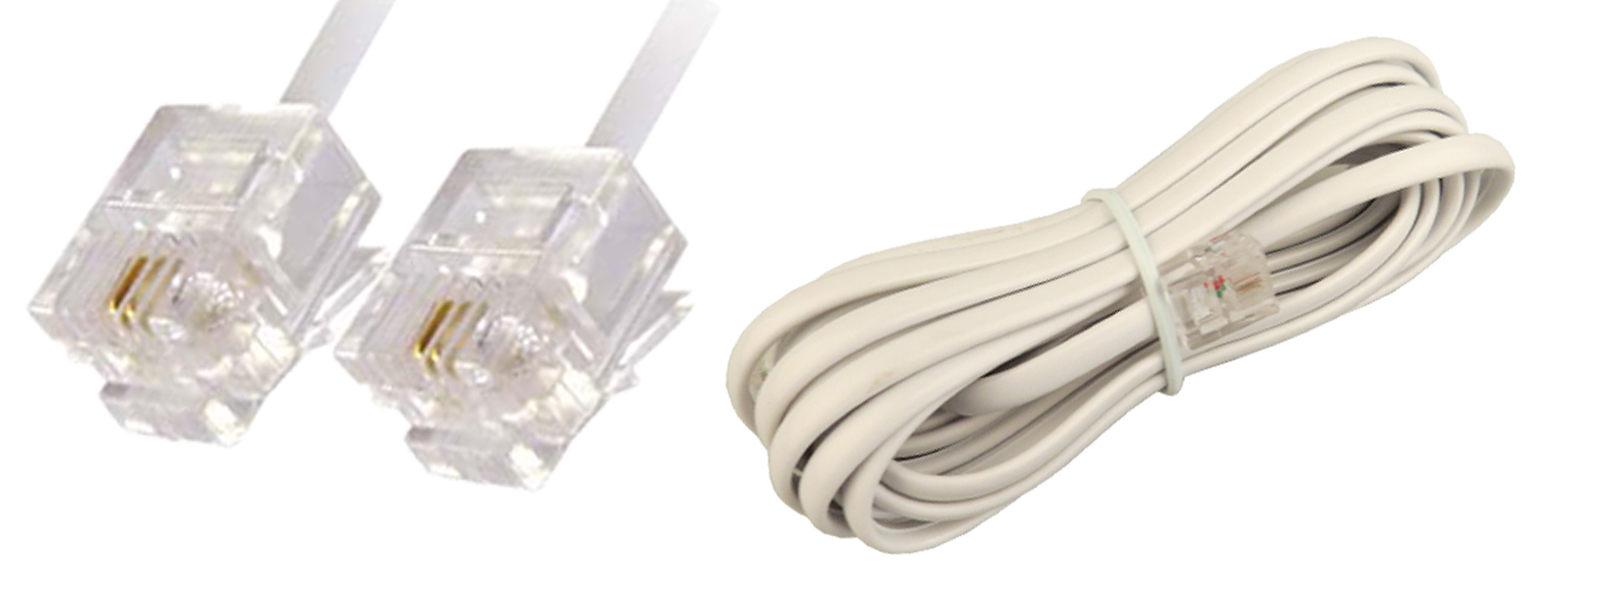 rj11 pins pictures to pin on pinterest